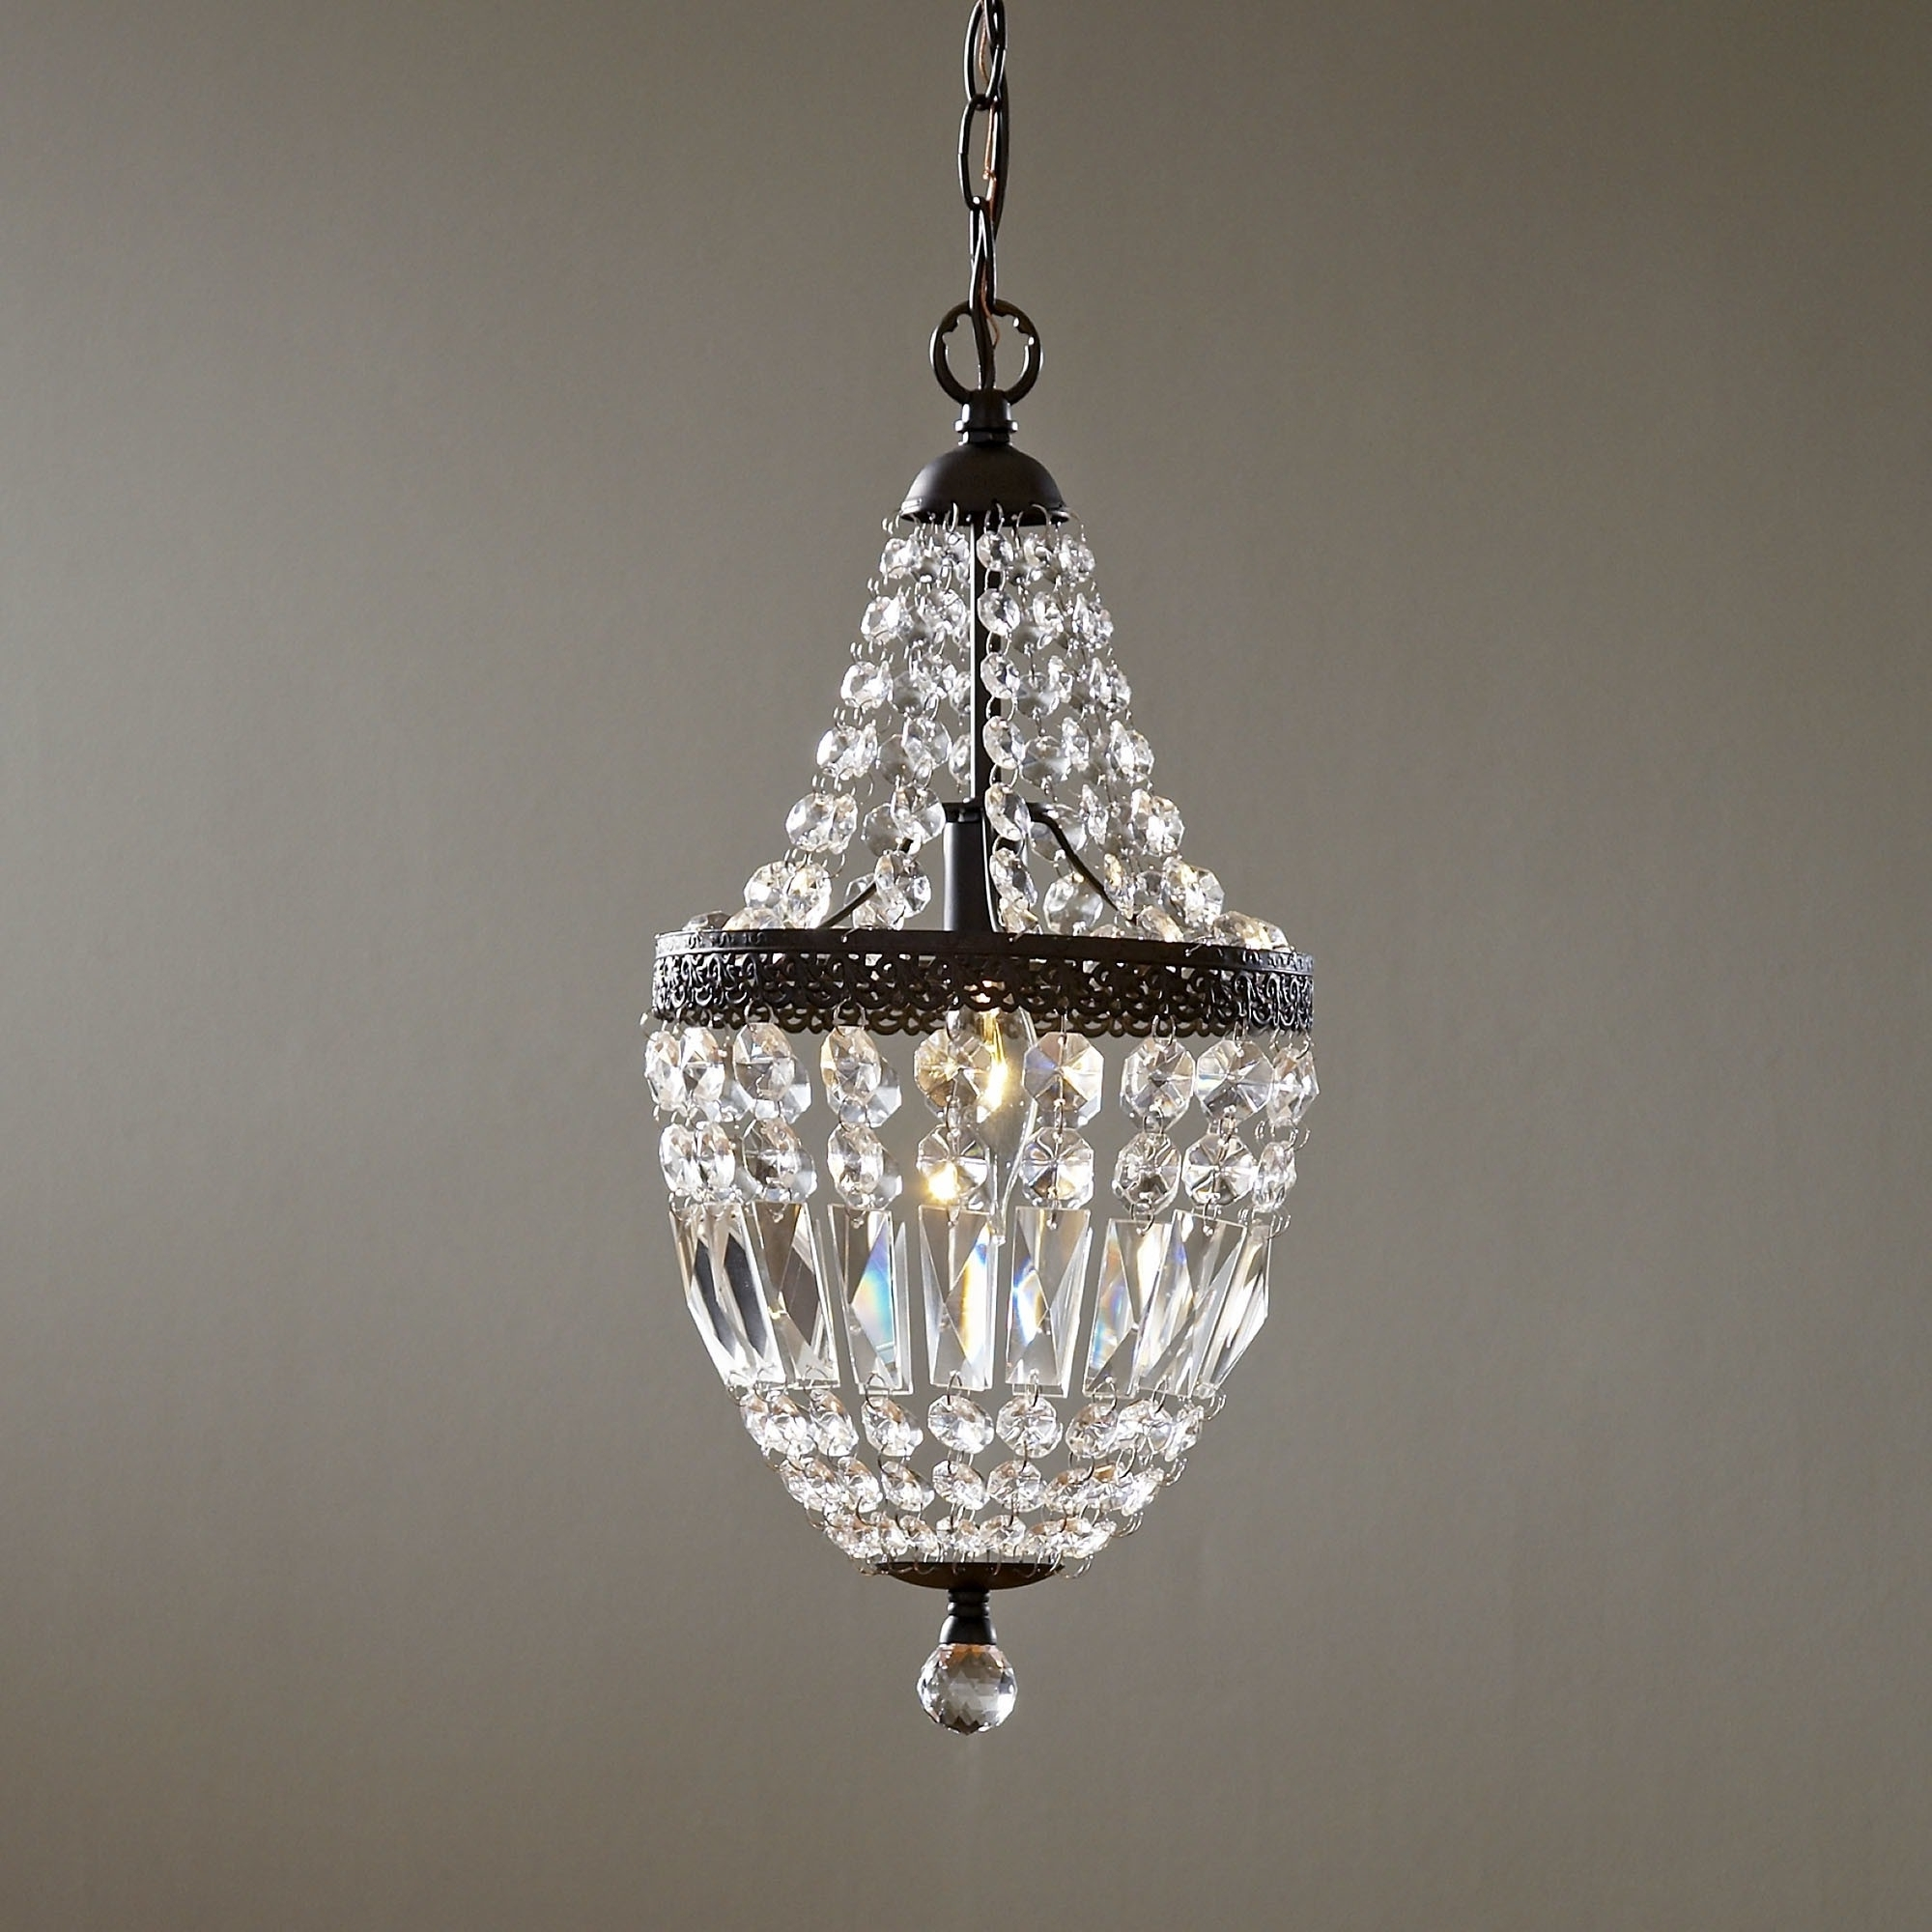 Latest Small Rustic Crystal Chandeliers With Regard To Farmhouse Style Lighting Tags : Magnificent Small Rustic Chandelier (View 6 of 20)